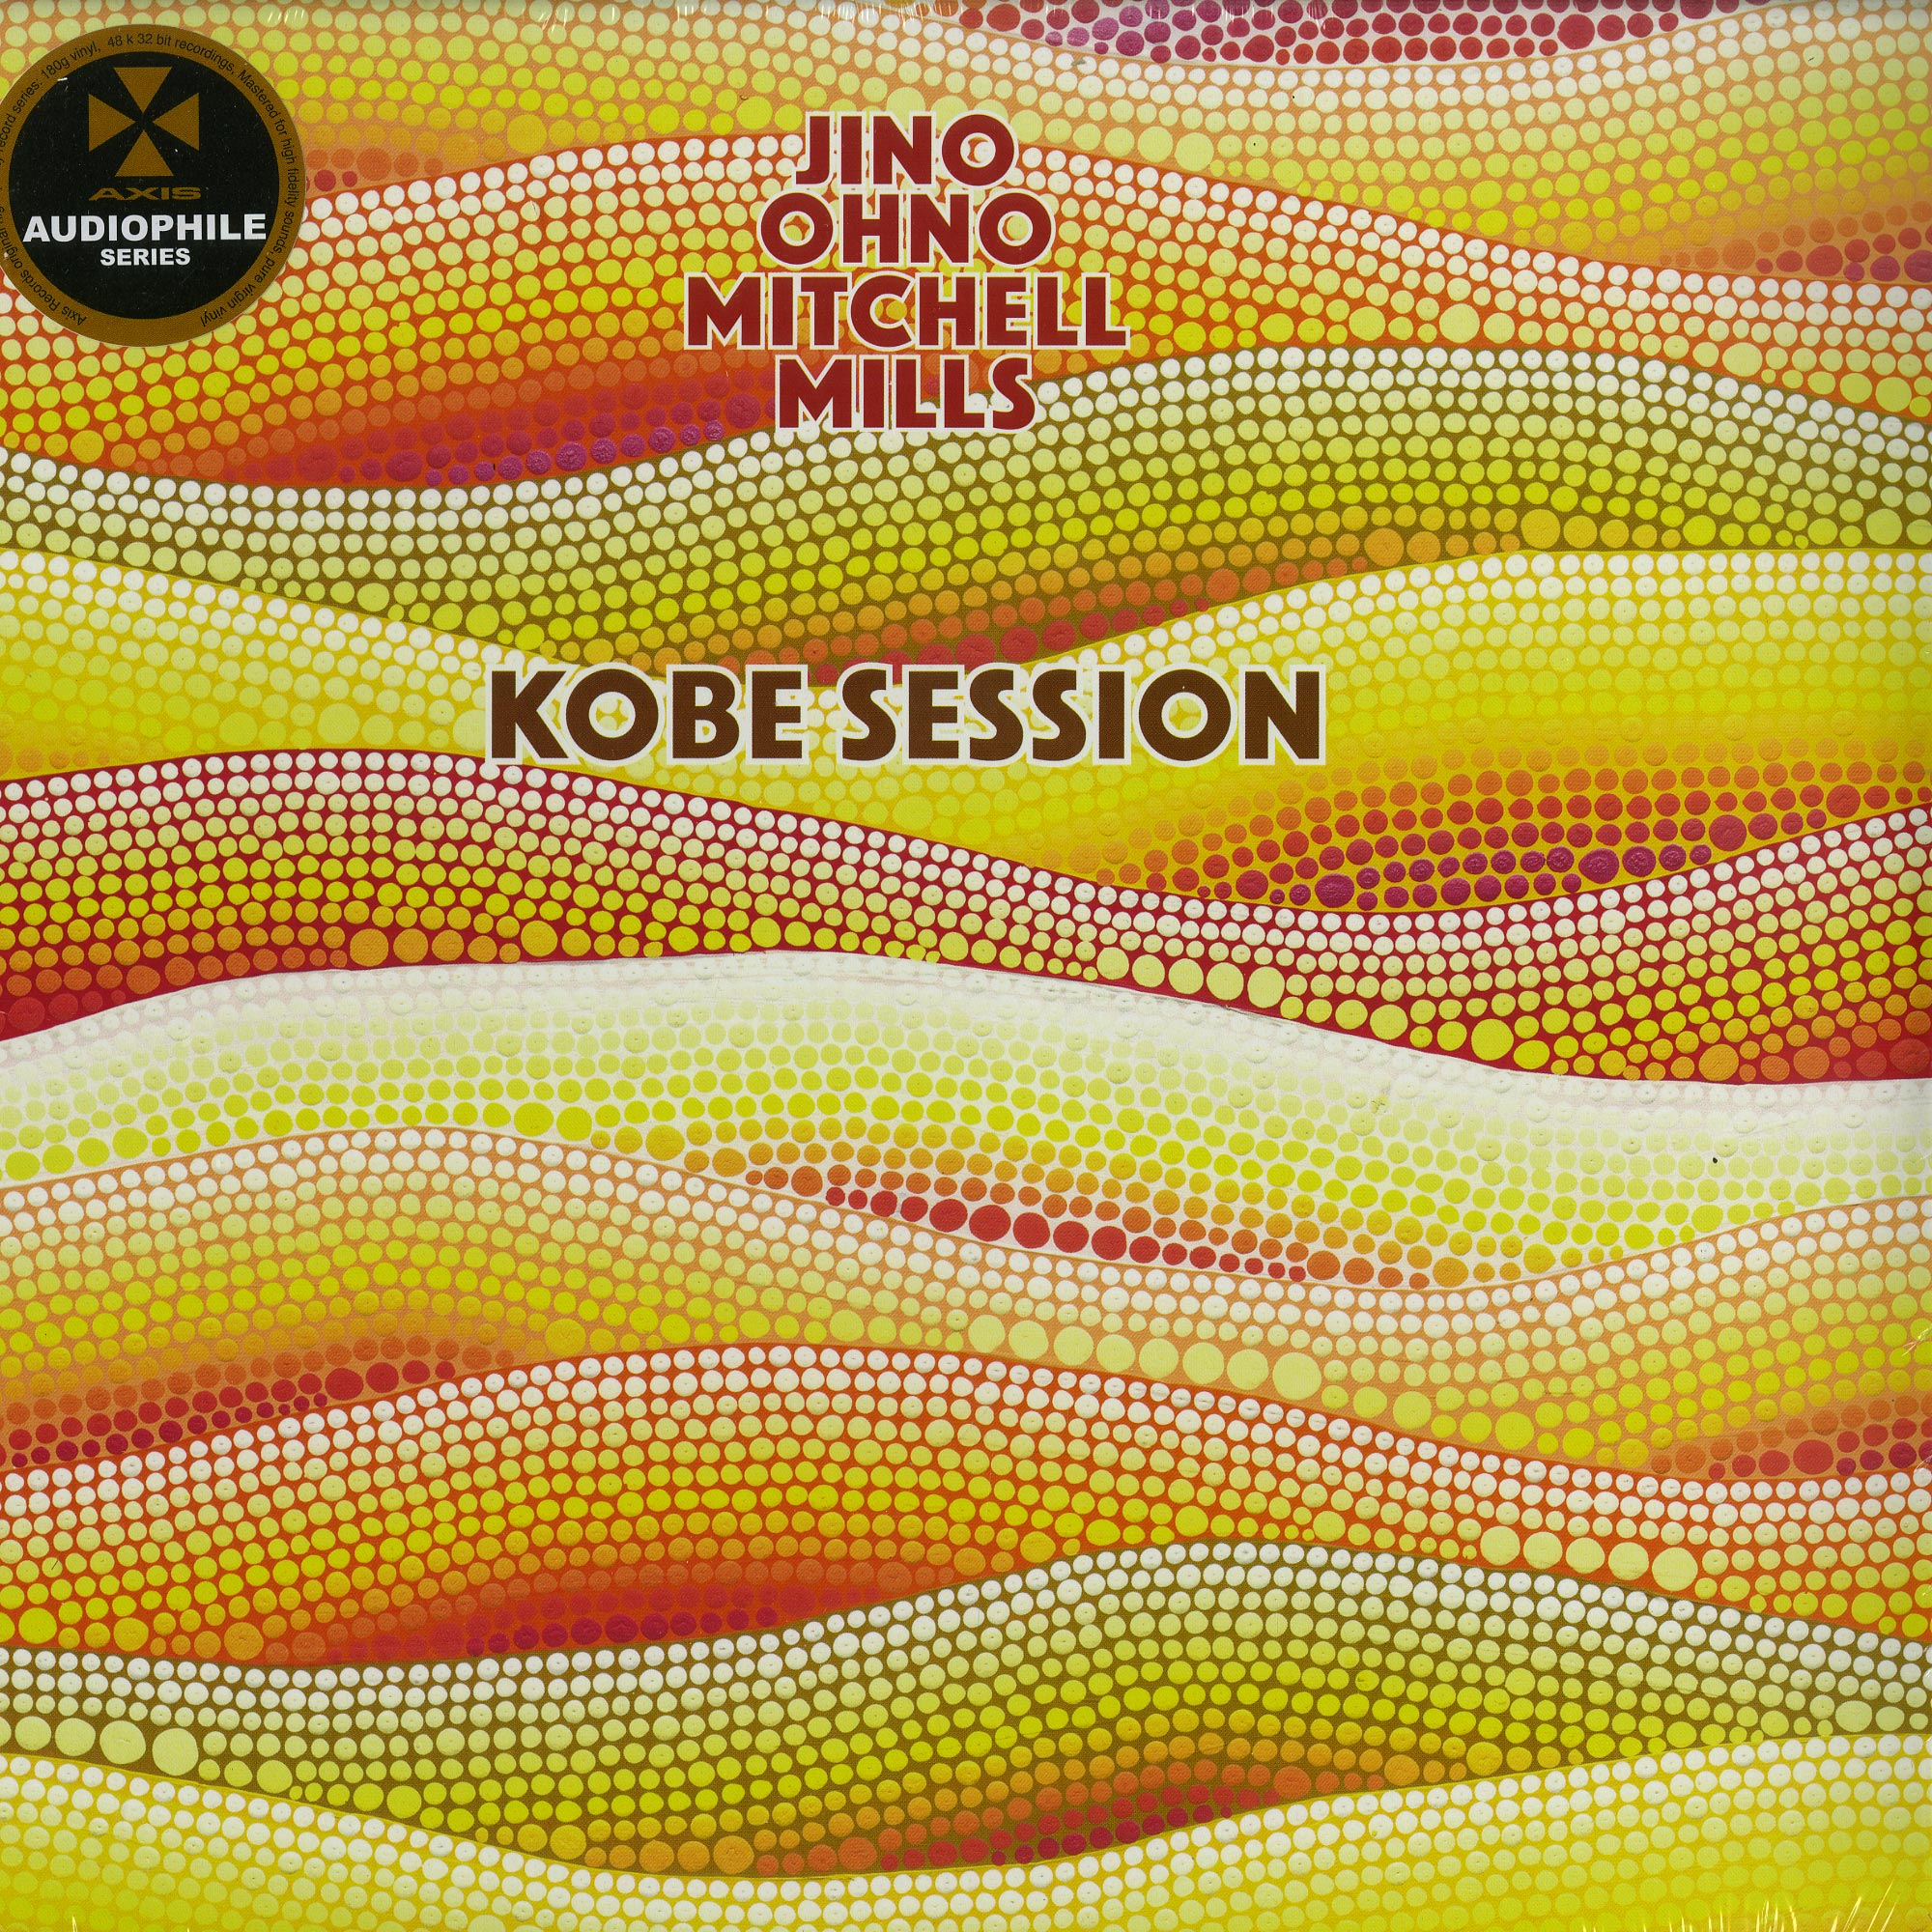 Jino Ohno Mitchell Mills  - KOBE SESSION